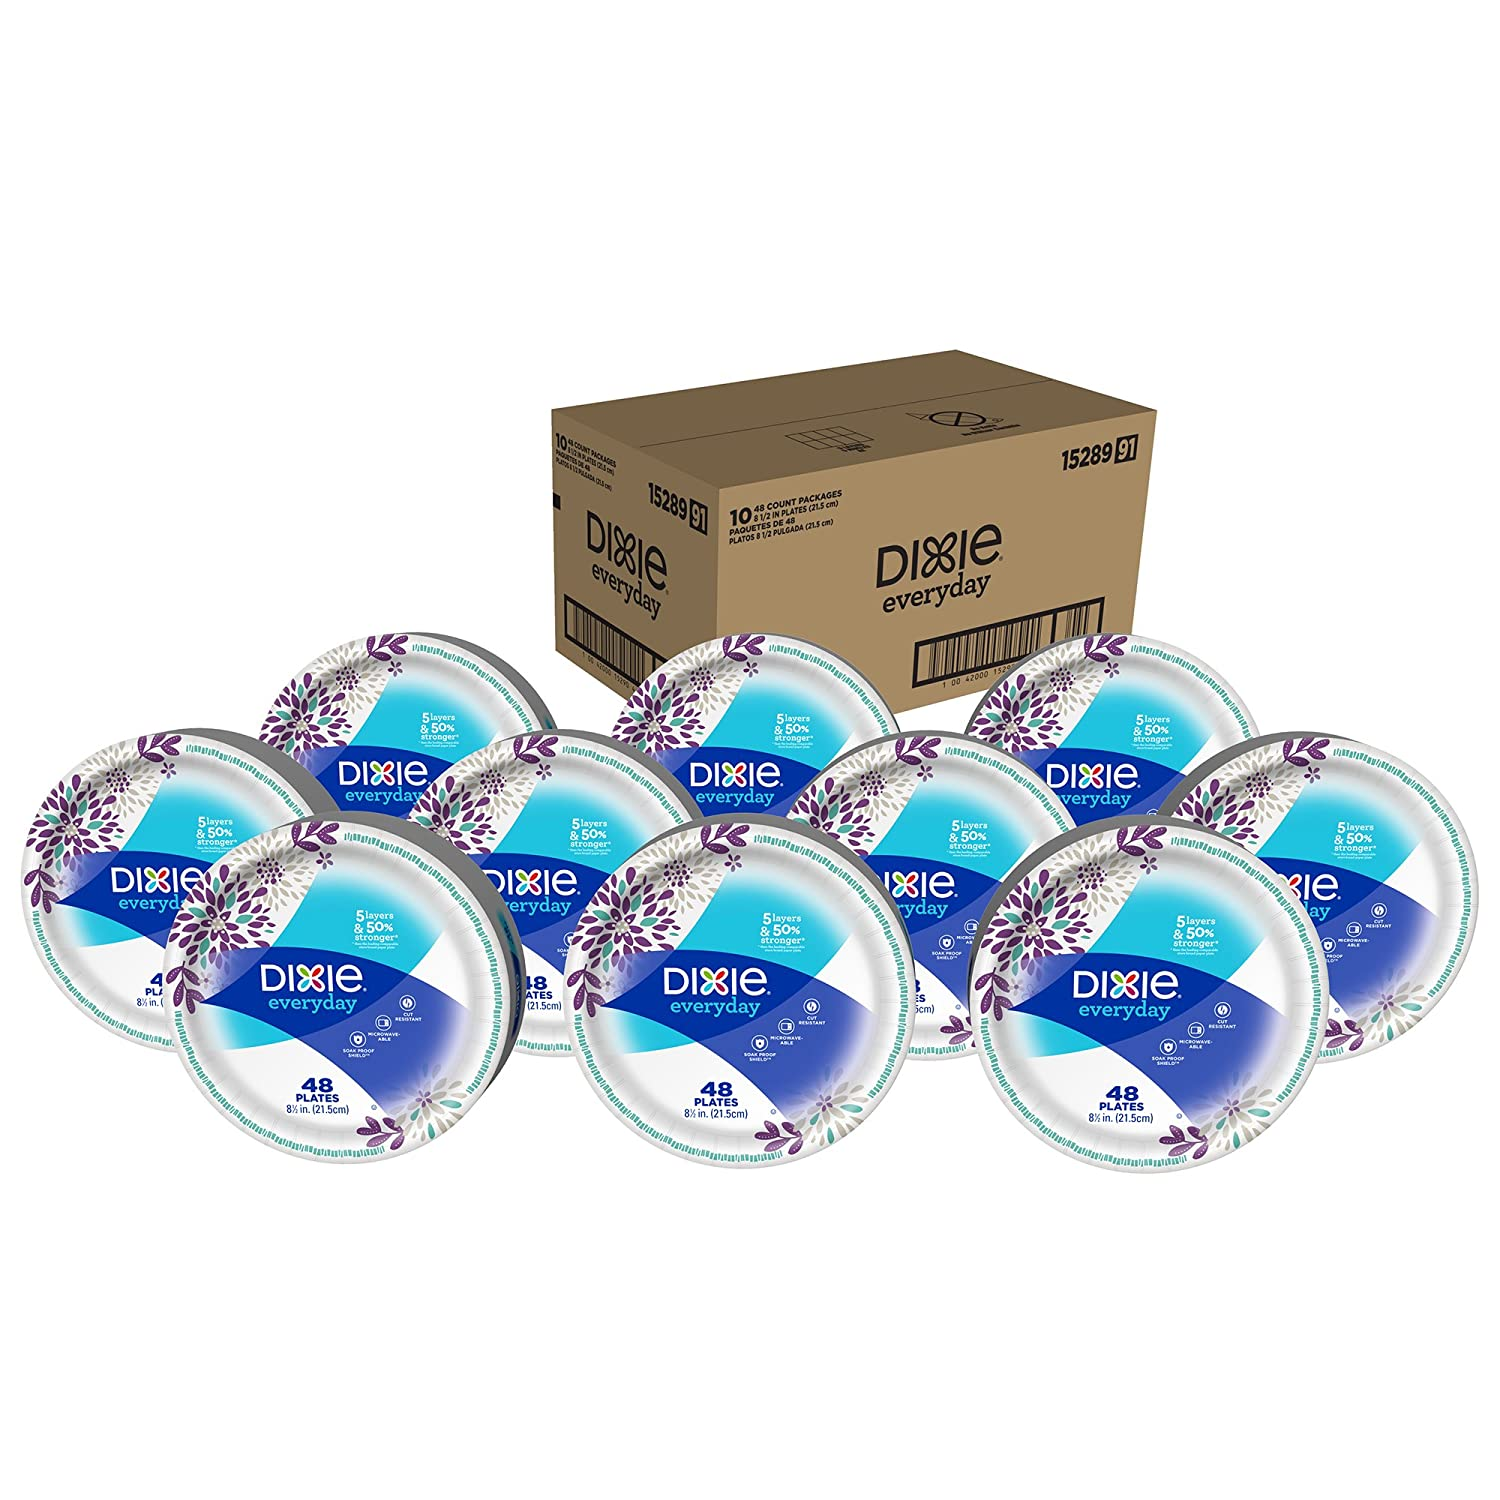 Dixie Everyday Paper Plates 8 1 2 480 Count 10 Packs of 48 Plates Lunch or Light Dinner Size Printed Disposable Plates